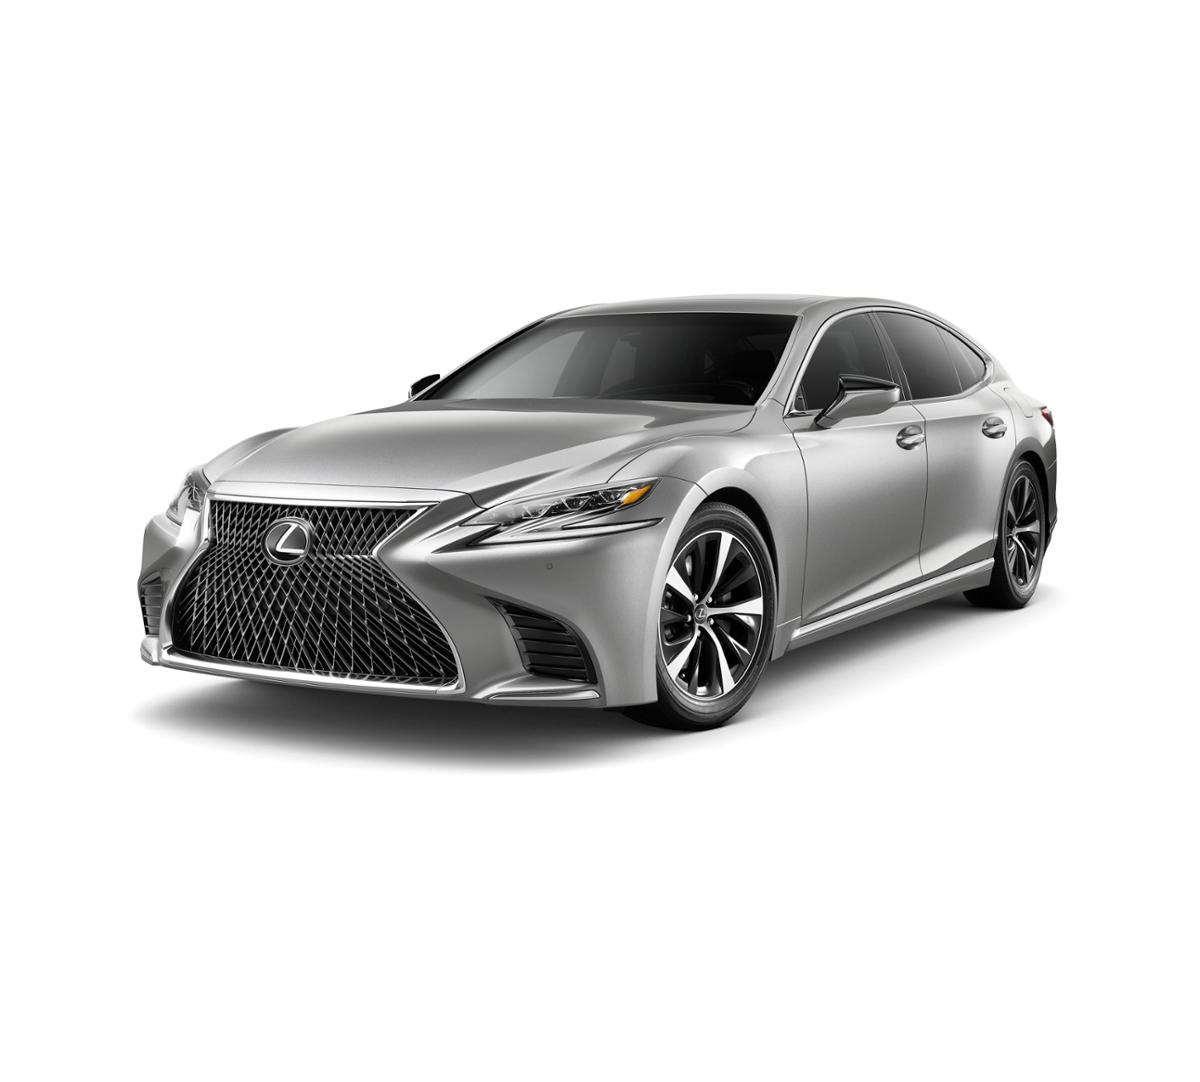 2019 Lexus LS 500 Vehicle Photo in Modesto, CA 95356